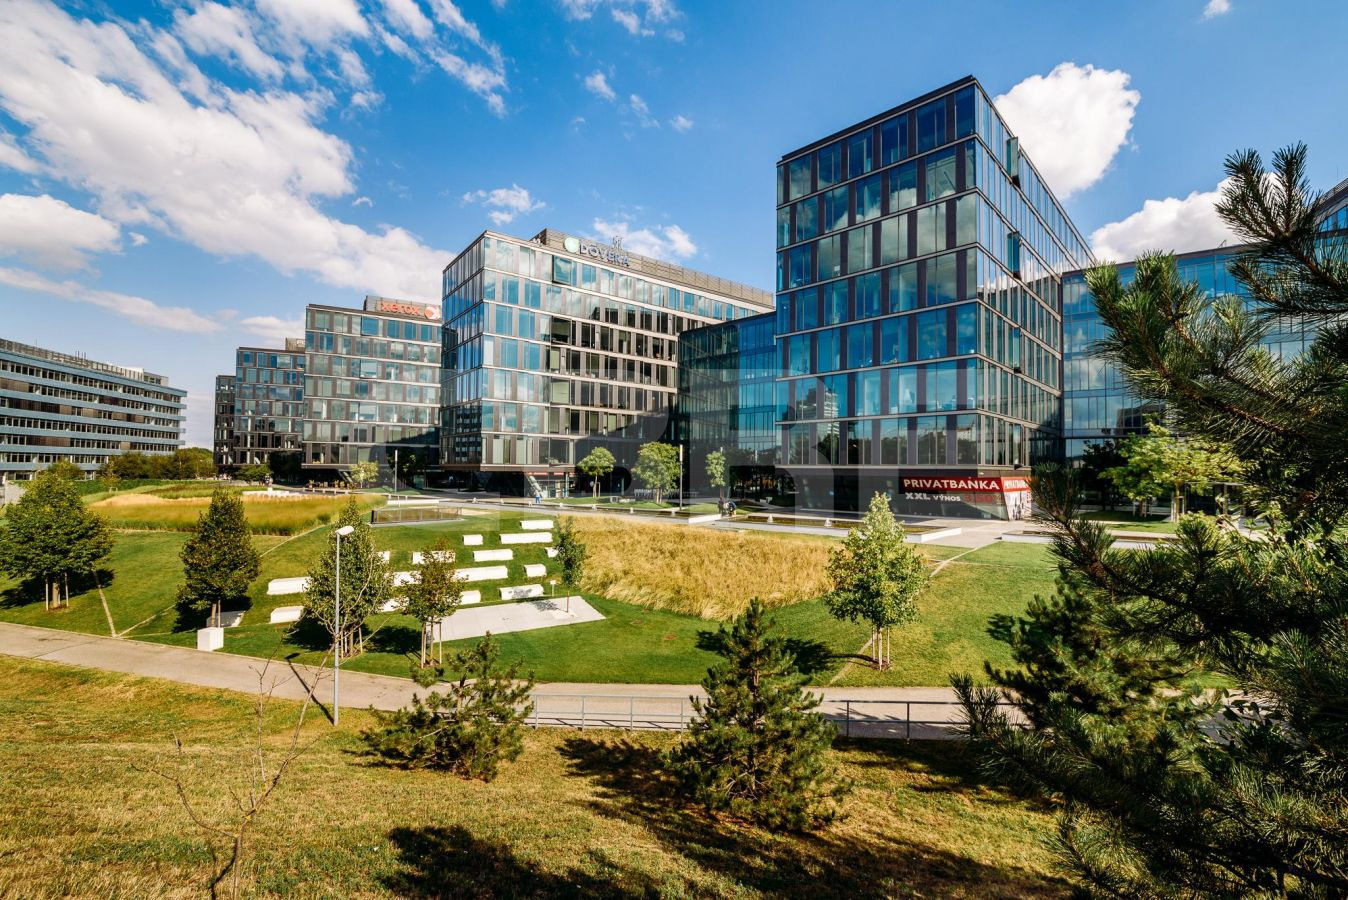 Digital Park phase III, Bratislava - Petržalka | Offices for rent by CBRE | 2